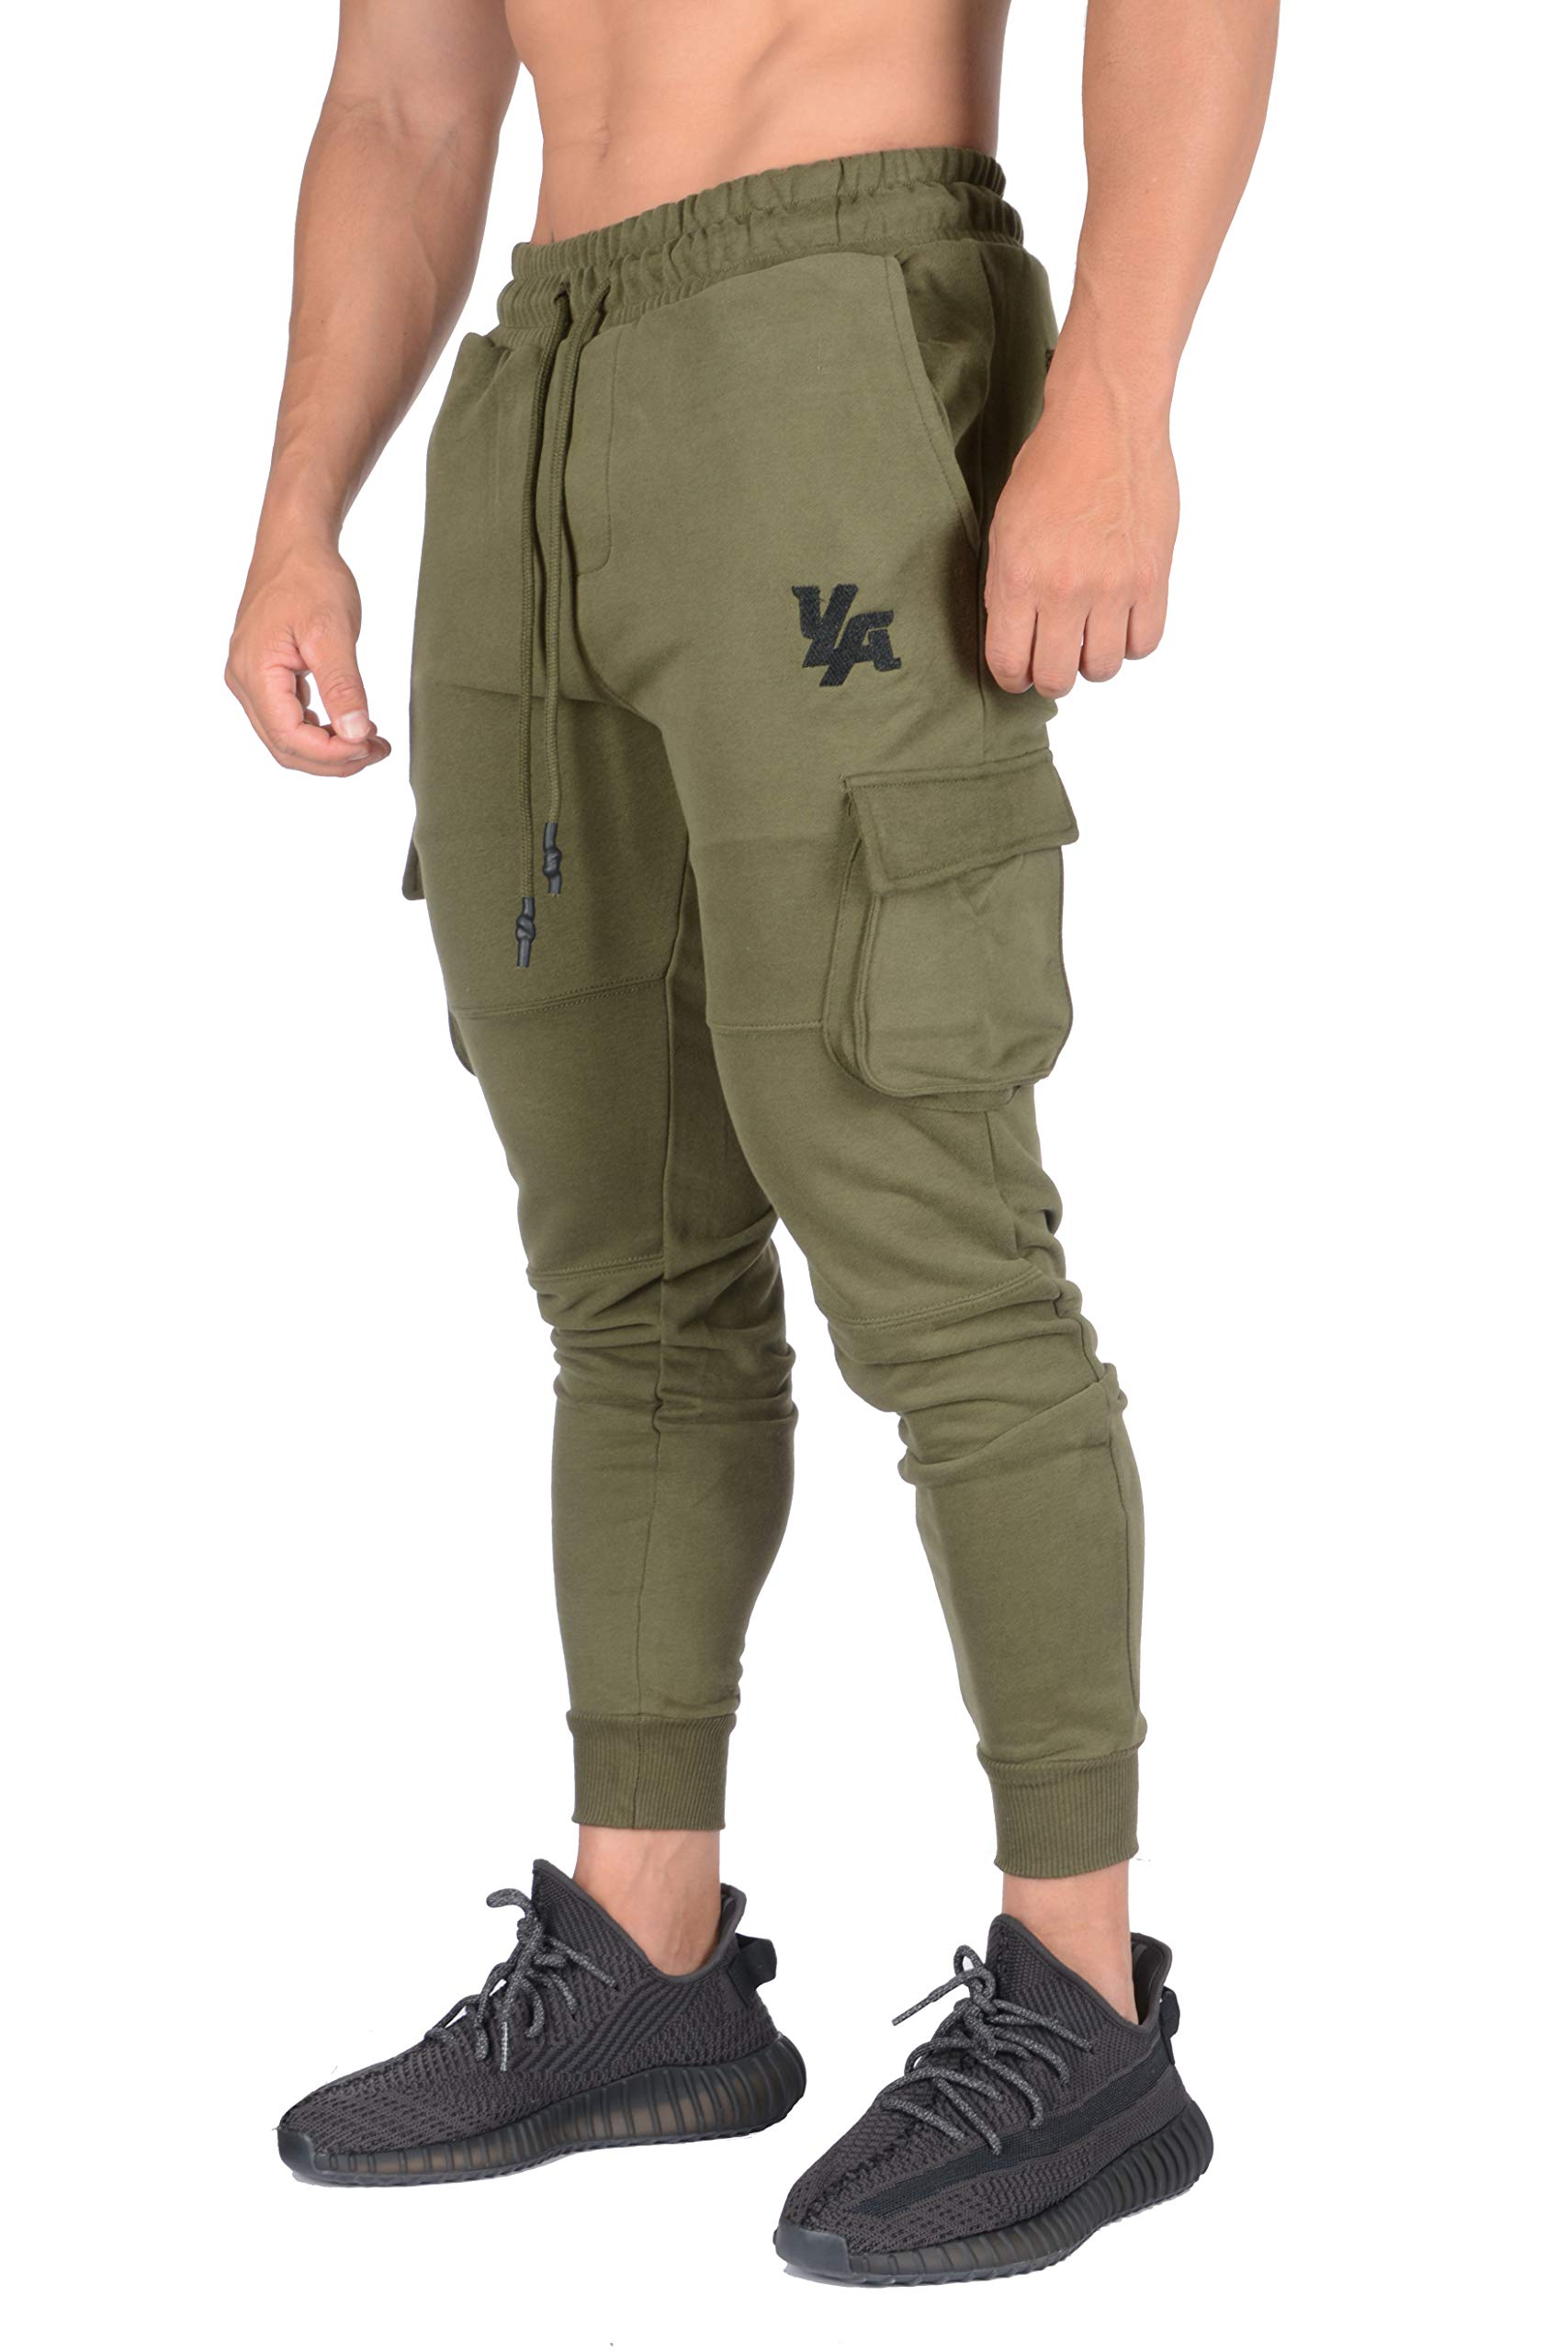 YoungLA Gym Joggers for Men   Skinny Tapered Cargo   Slim Fit Sweatpants  Workout Pants Clothes with Pockets   203